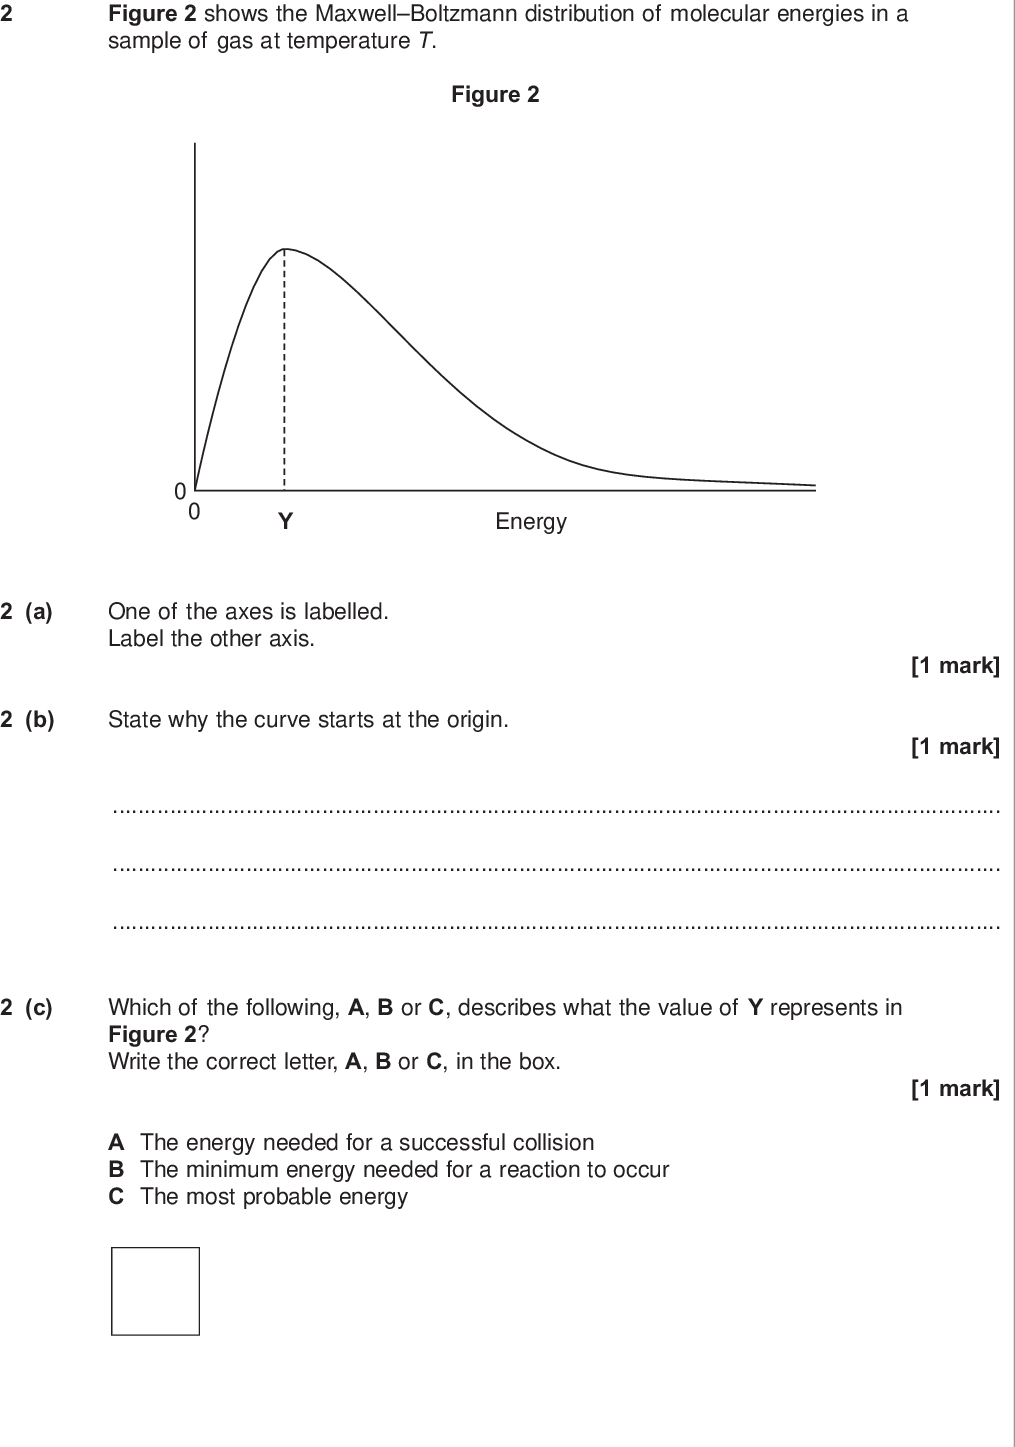 do not write outside the box figure shows the maxwell boltzmann distribution of molecular energies in a sample of gas at temperature t figure energy a one of the axes is labelled label the other axis b state why the curve starts at the origin mark mark c which of the following a b or c describes what the value of y represents in figure write the correct letter a b or c in the box mark a the energy needed for a successful collision b the minimum energy needed for a reaction to occur c the most probable energy wmp jun chem d on figure draw a distribution of molecular energies in this sample of gas at a higher temperature do not write outside the box e the pressure of the original sample of gas is doubled at temperature t state the effect if any of this change on the value of y marks mark turn over for the next question turn over wmp jun chem